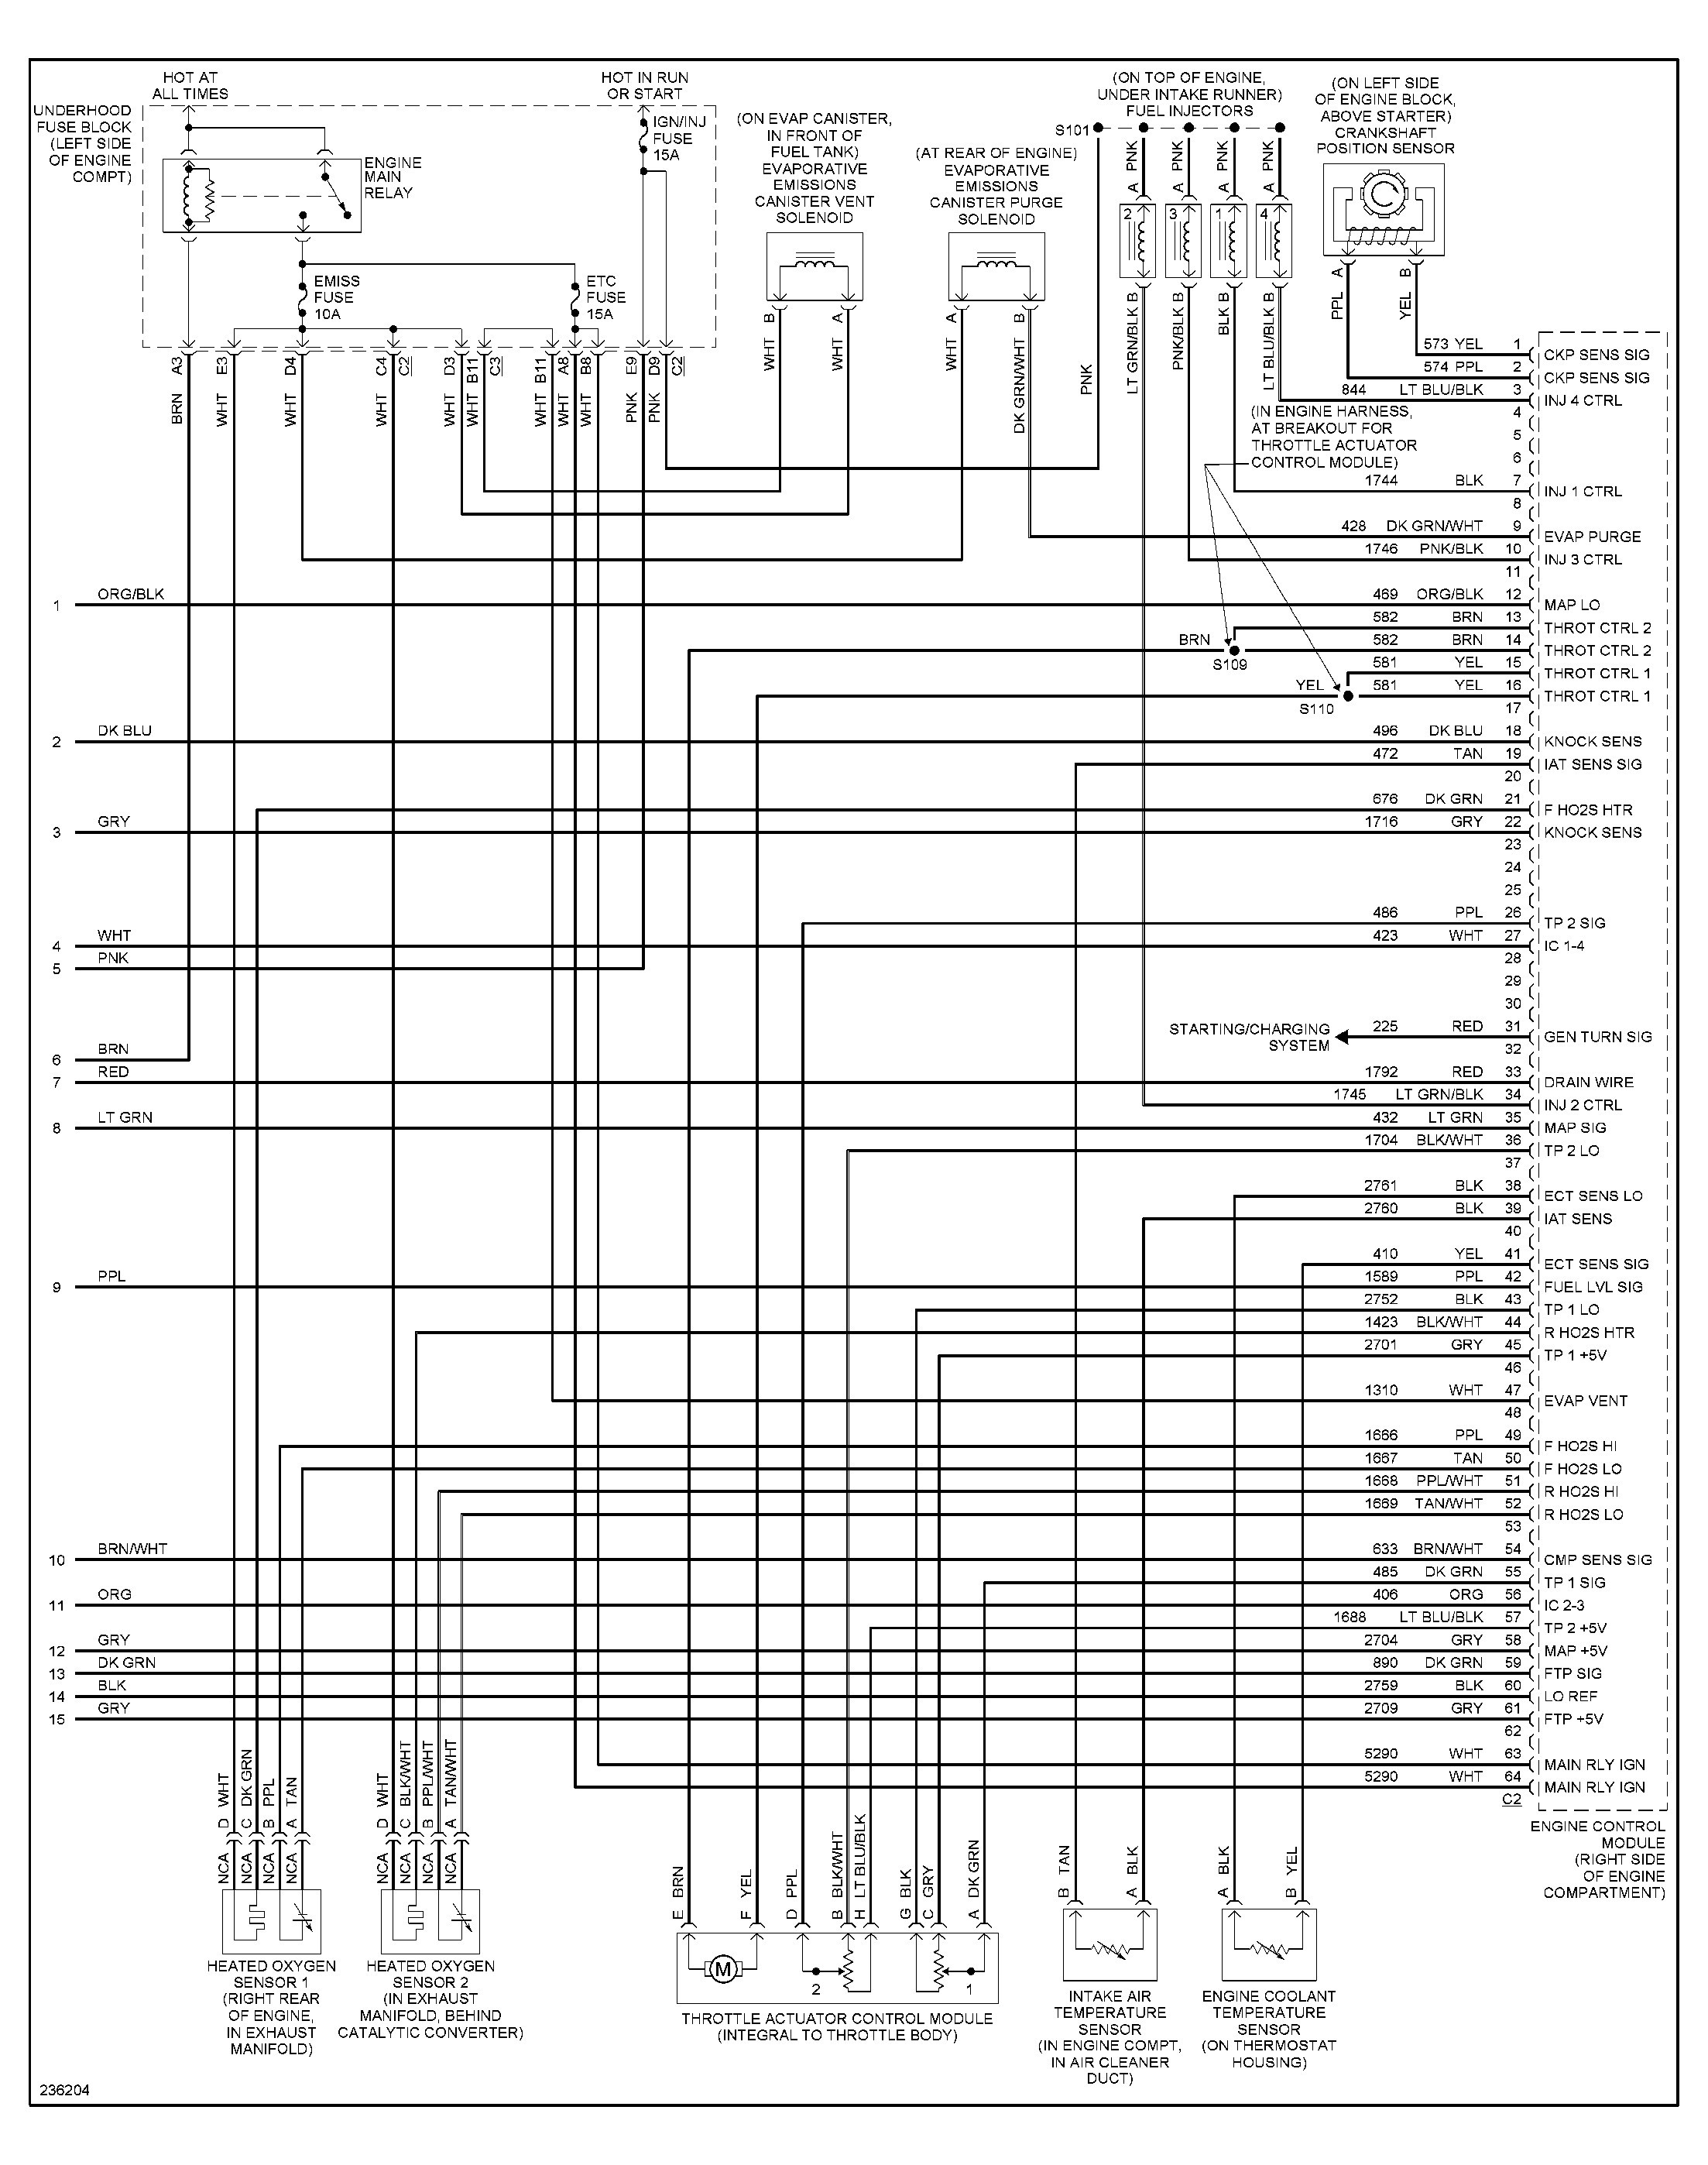 2003 Saturn Vue Wiring Diagram Saturn Vue Emissions Diagram Information Wiring Diagram • Of 2003 Saturn Vue Wiring Diagram Saturn Vue Wiring Diagram Wiring Diagram and Schematics